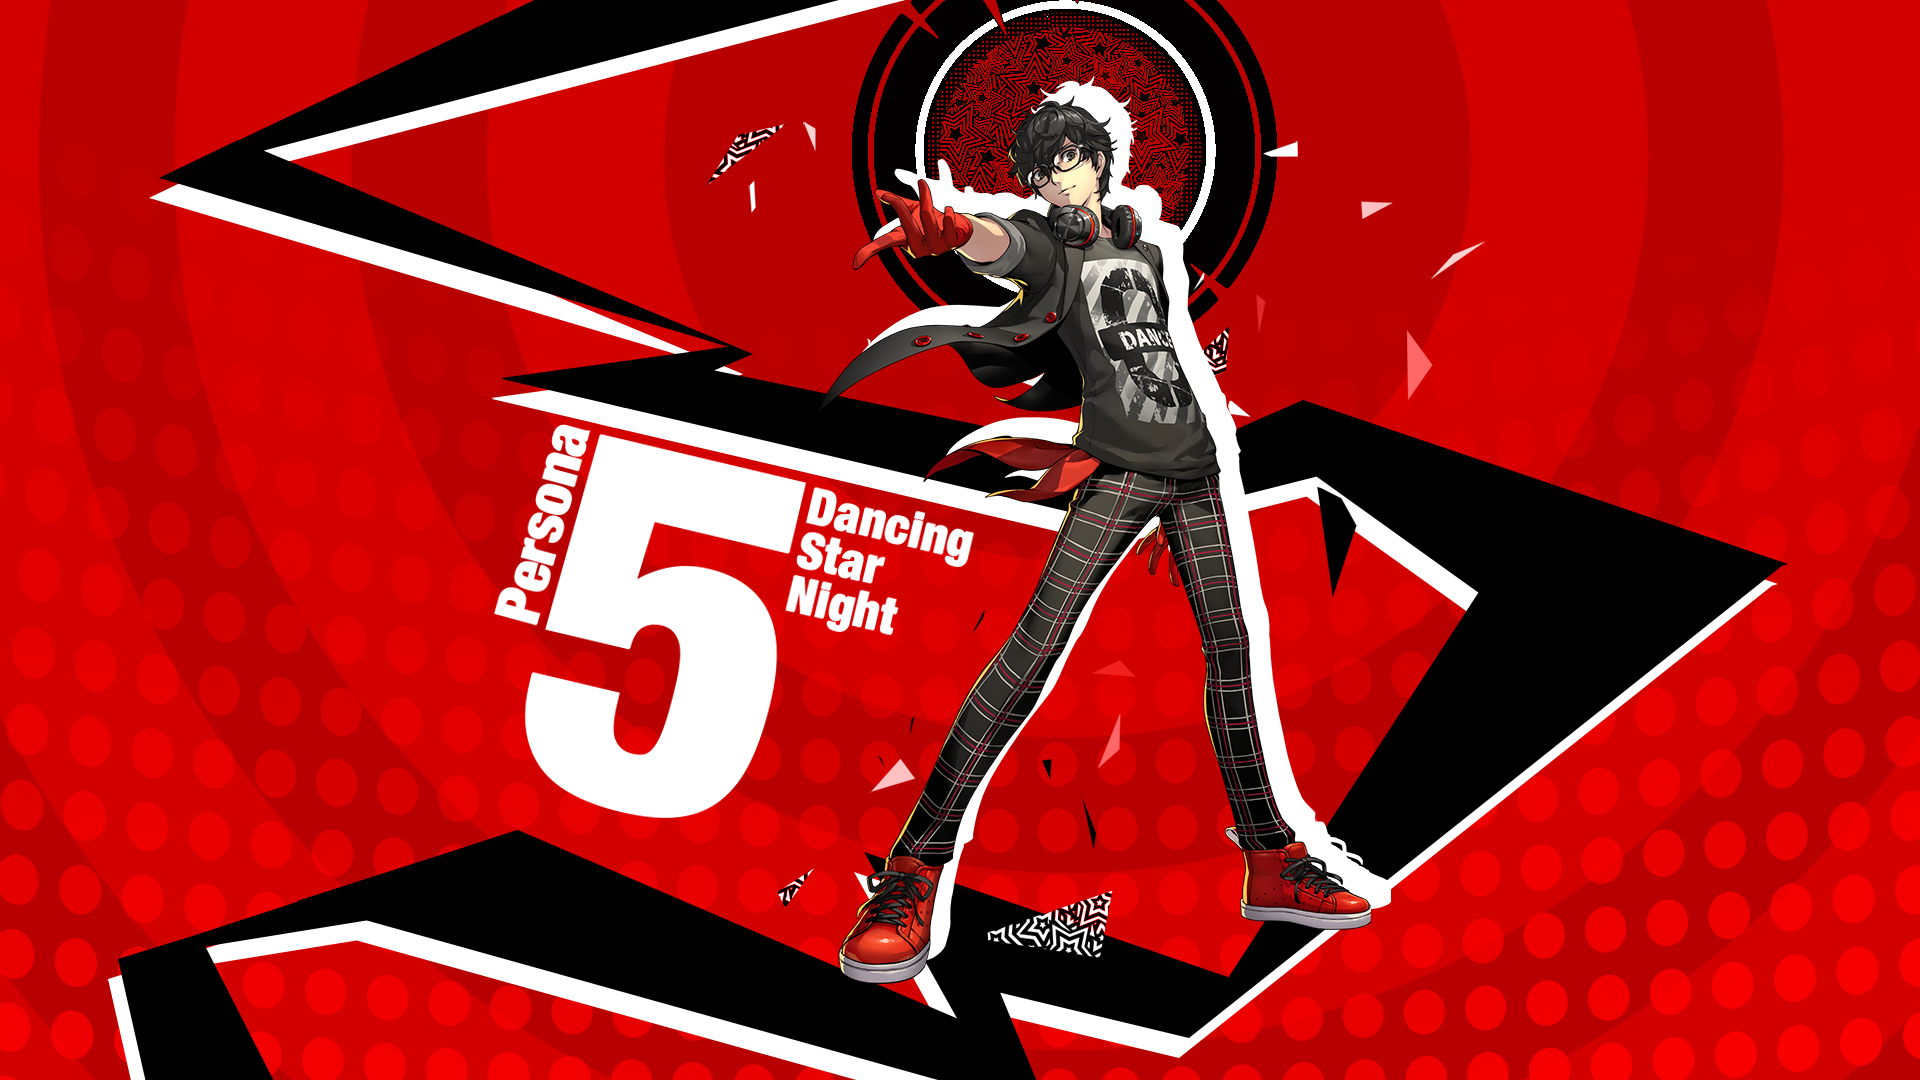 Persona 5 Star Background Posted By Ethan Peltier